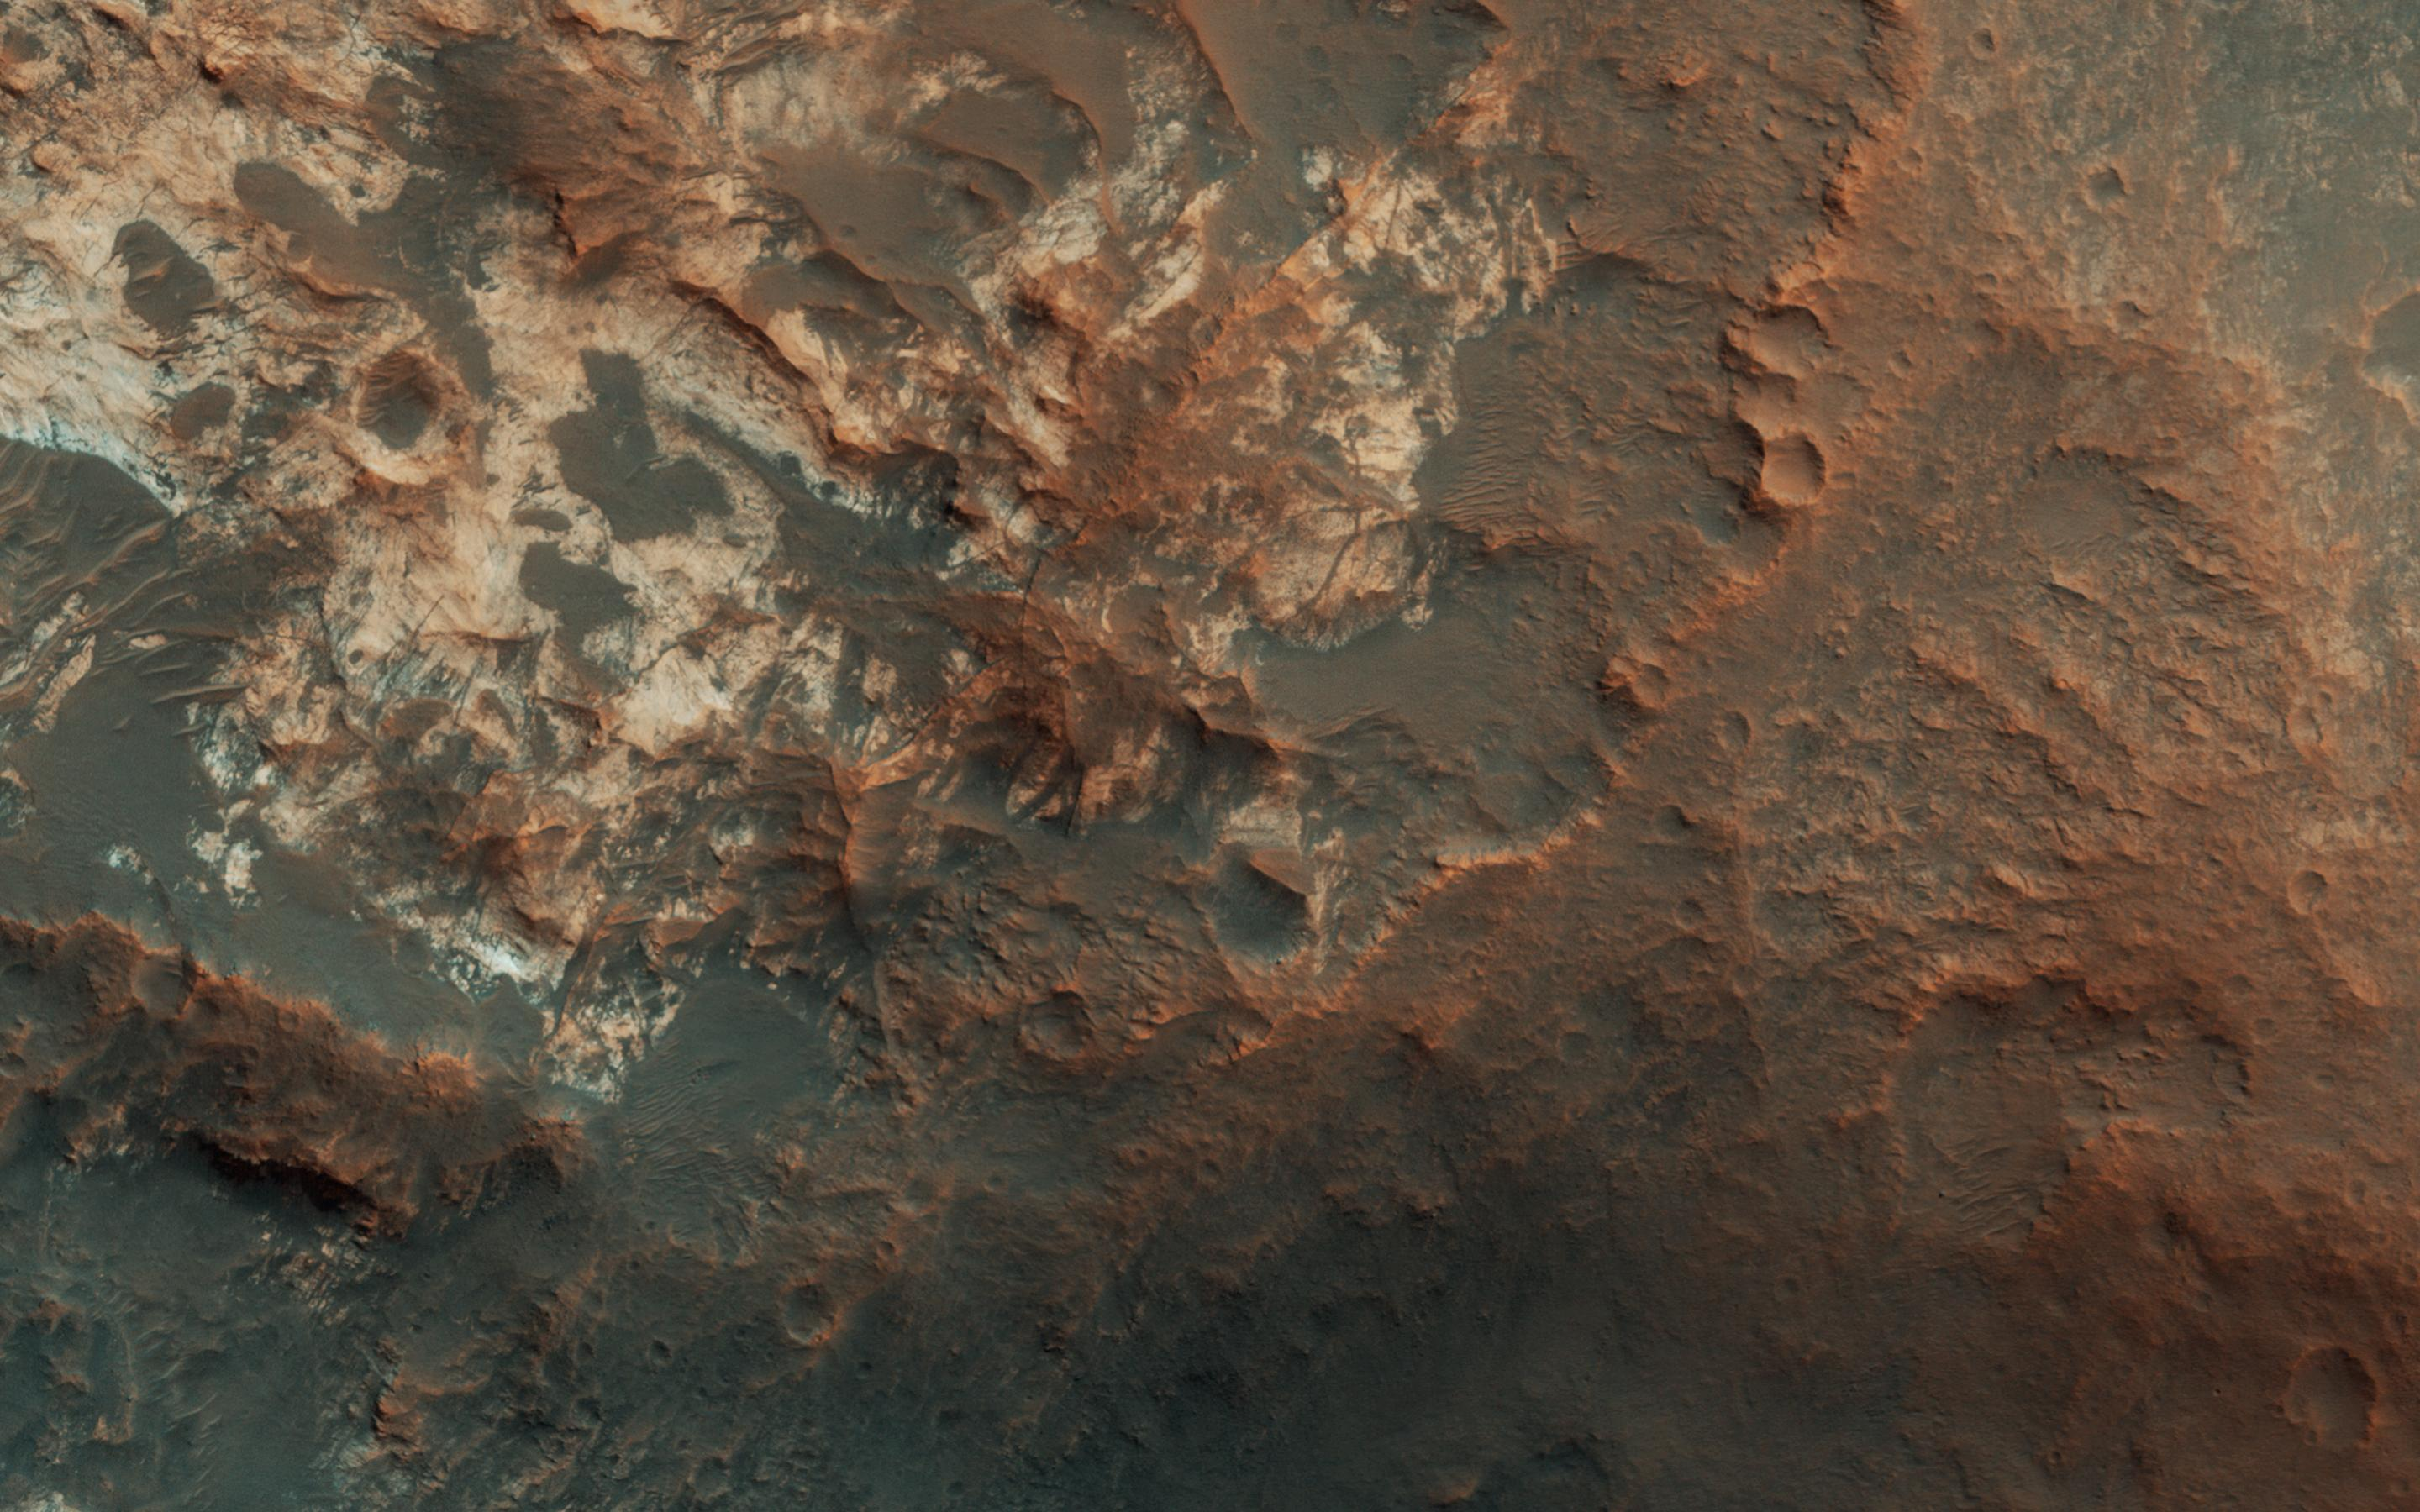 The Entrance to Mawrth Vallis | NASA